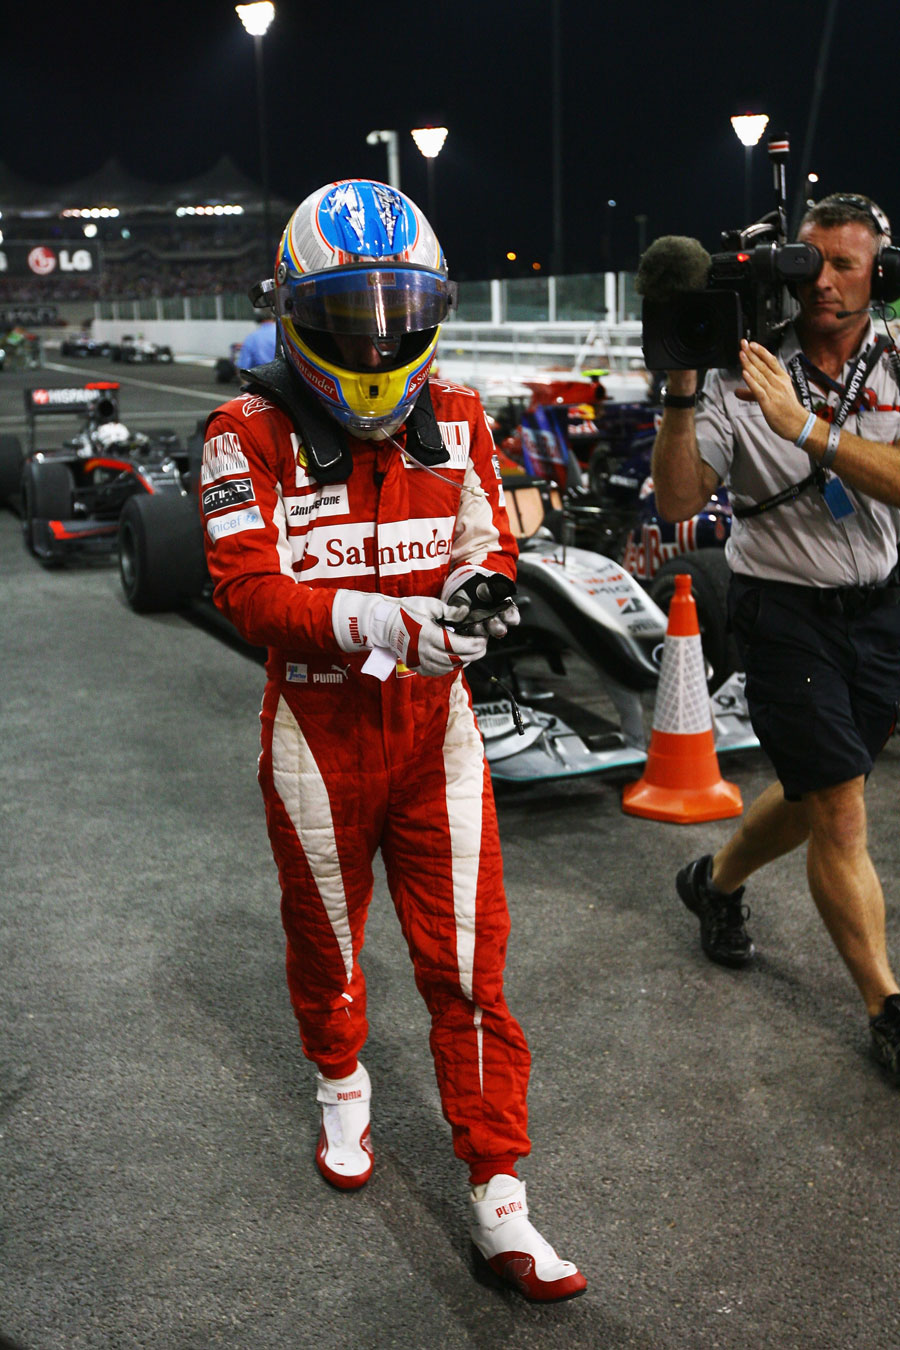 There was title disappointment for Fernando Alonso